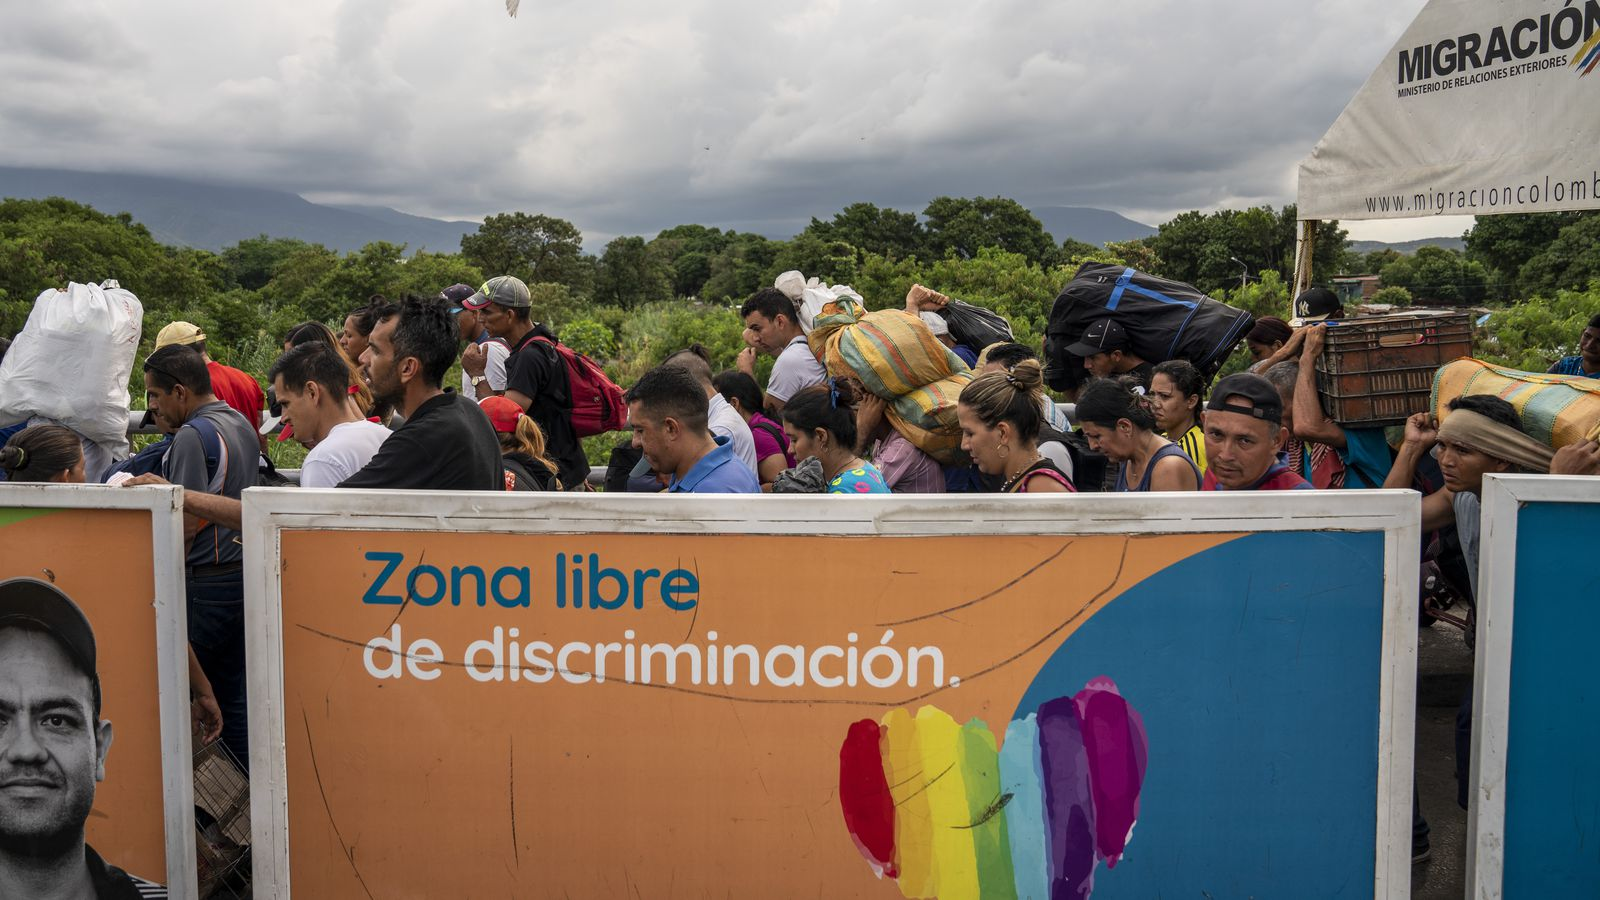 Crowds jostle through the line to re-enter Venezuela at the border crossing, many carrying heavy packs on their shoulders with goods purchased in Colombia. Many Venezuelans cross the border to buy what they need in Colombia.